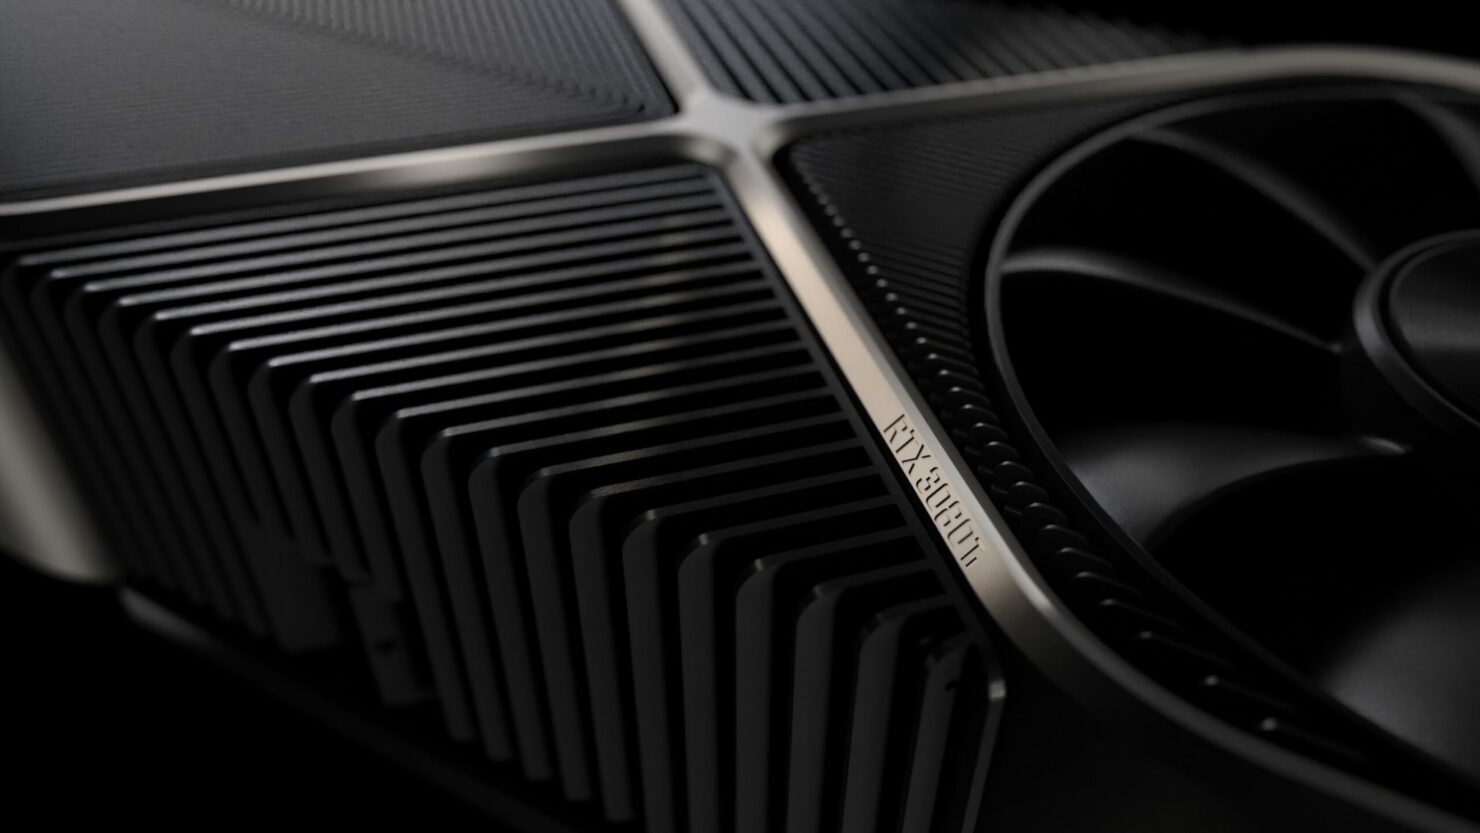 Watch The NVIDIA Computex 2021 Keynote Live Here - GeForce RTX 3080 Ti, RTX 3070 Ti & Tons of Gaming Announcements